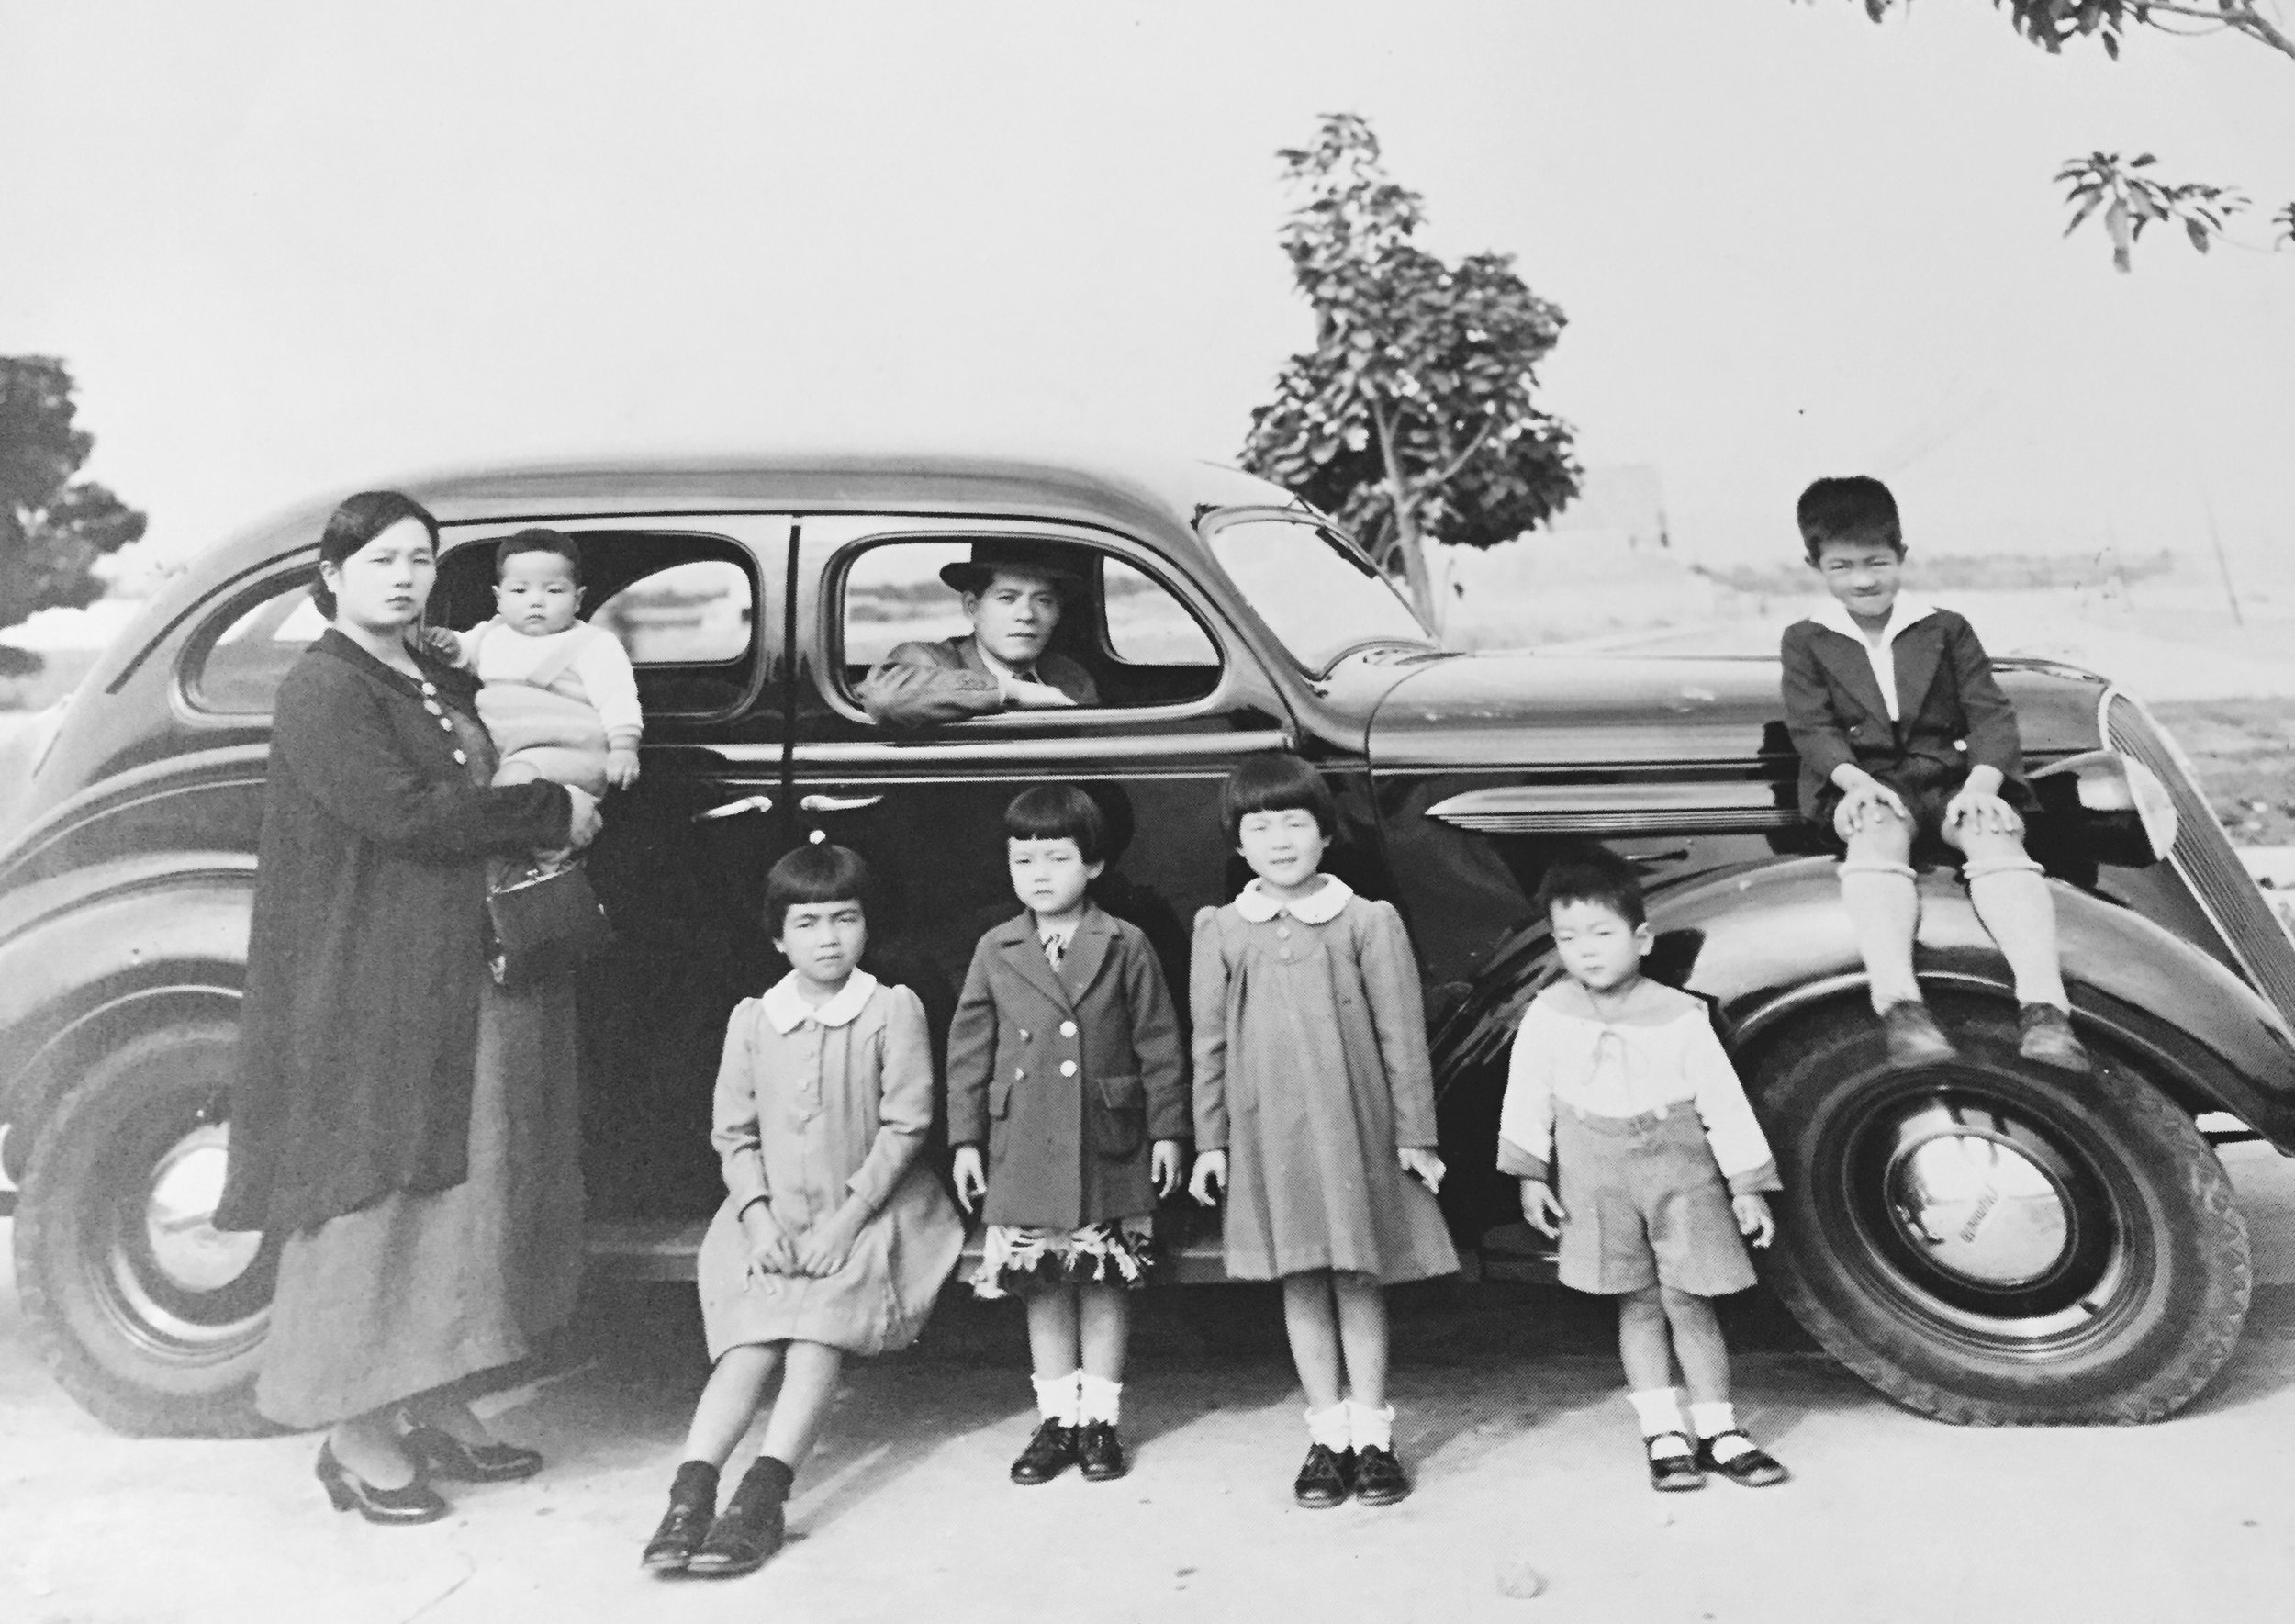 The Shibayama family at a park in Peru. From left to right: Tatsue (mother), Takeshi, Fusako, Akiko, Kikue, Kenichi, Art, and Yuzo (father) in front seat of car.